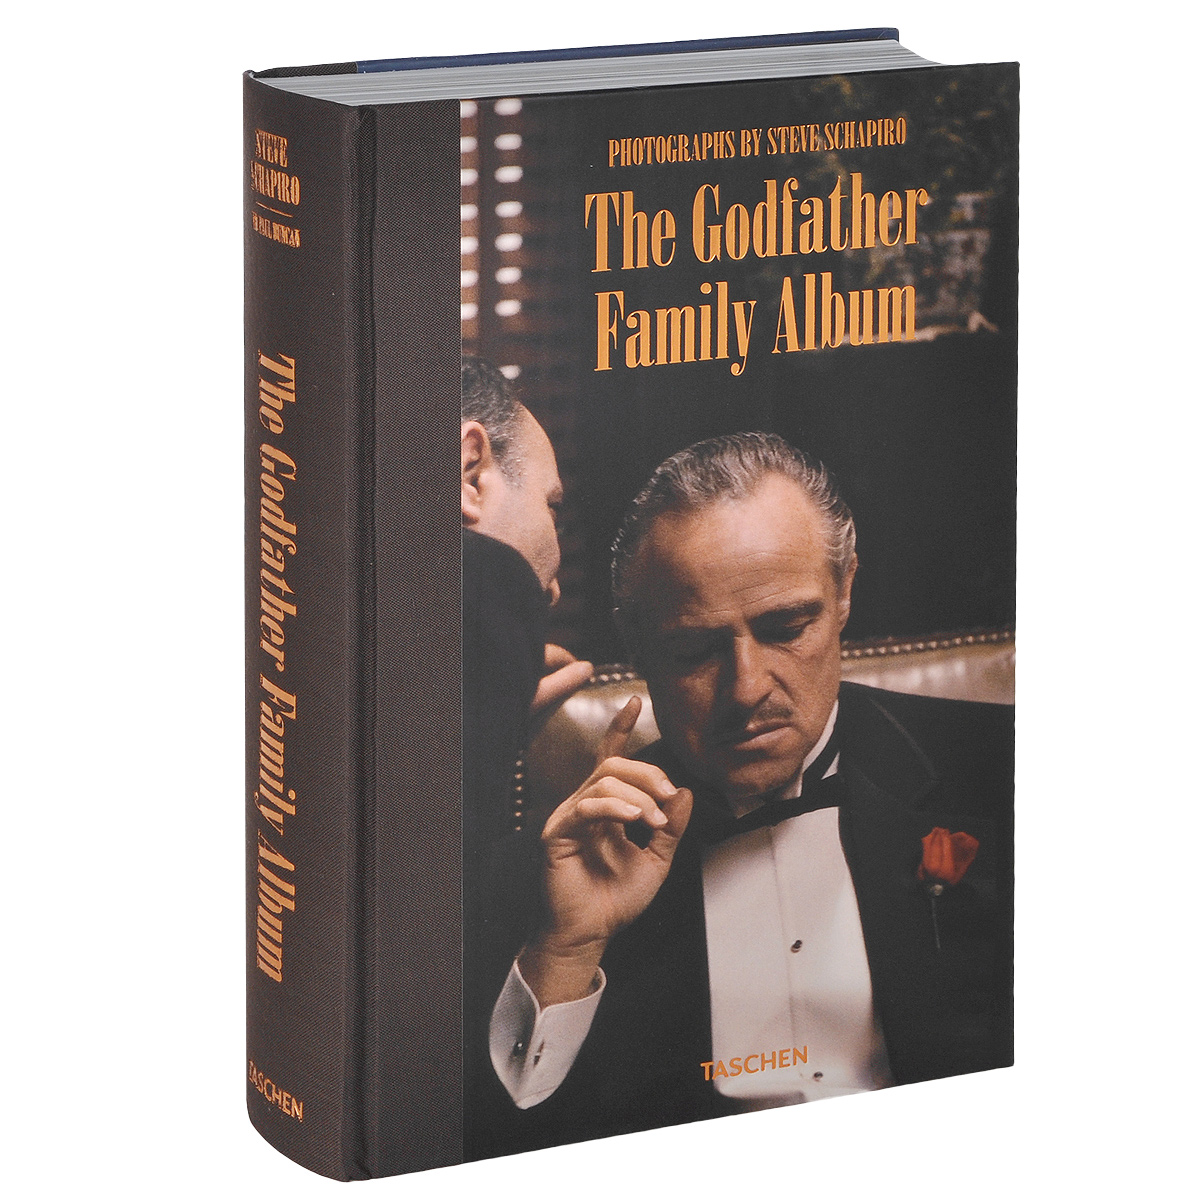 The Godfather Family Album lyric of the circle heart – the bowman family trilogy